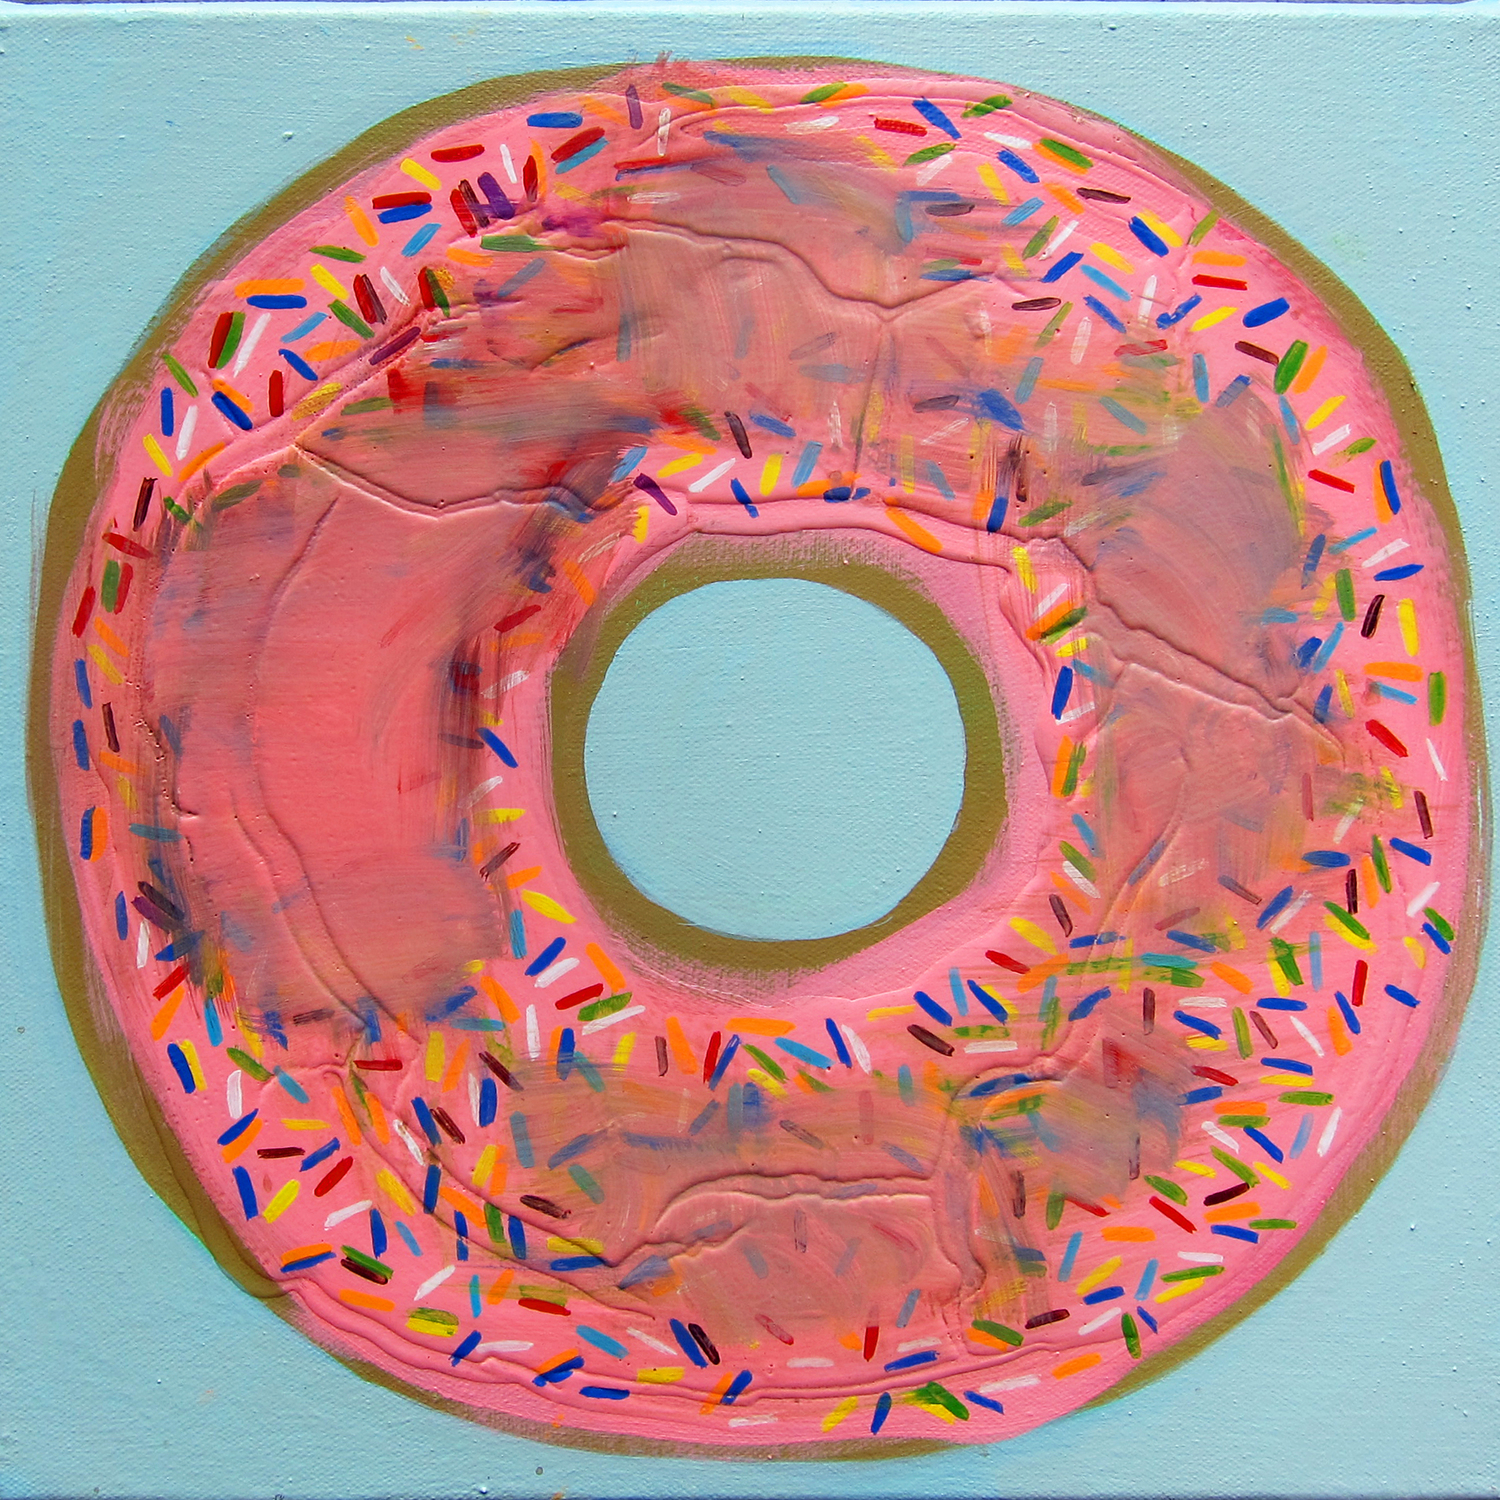 Pink Donut , 2015, acrylic on canvas, 12 x 12 inches. Jennifer Coates.